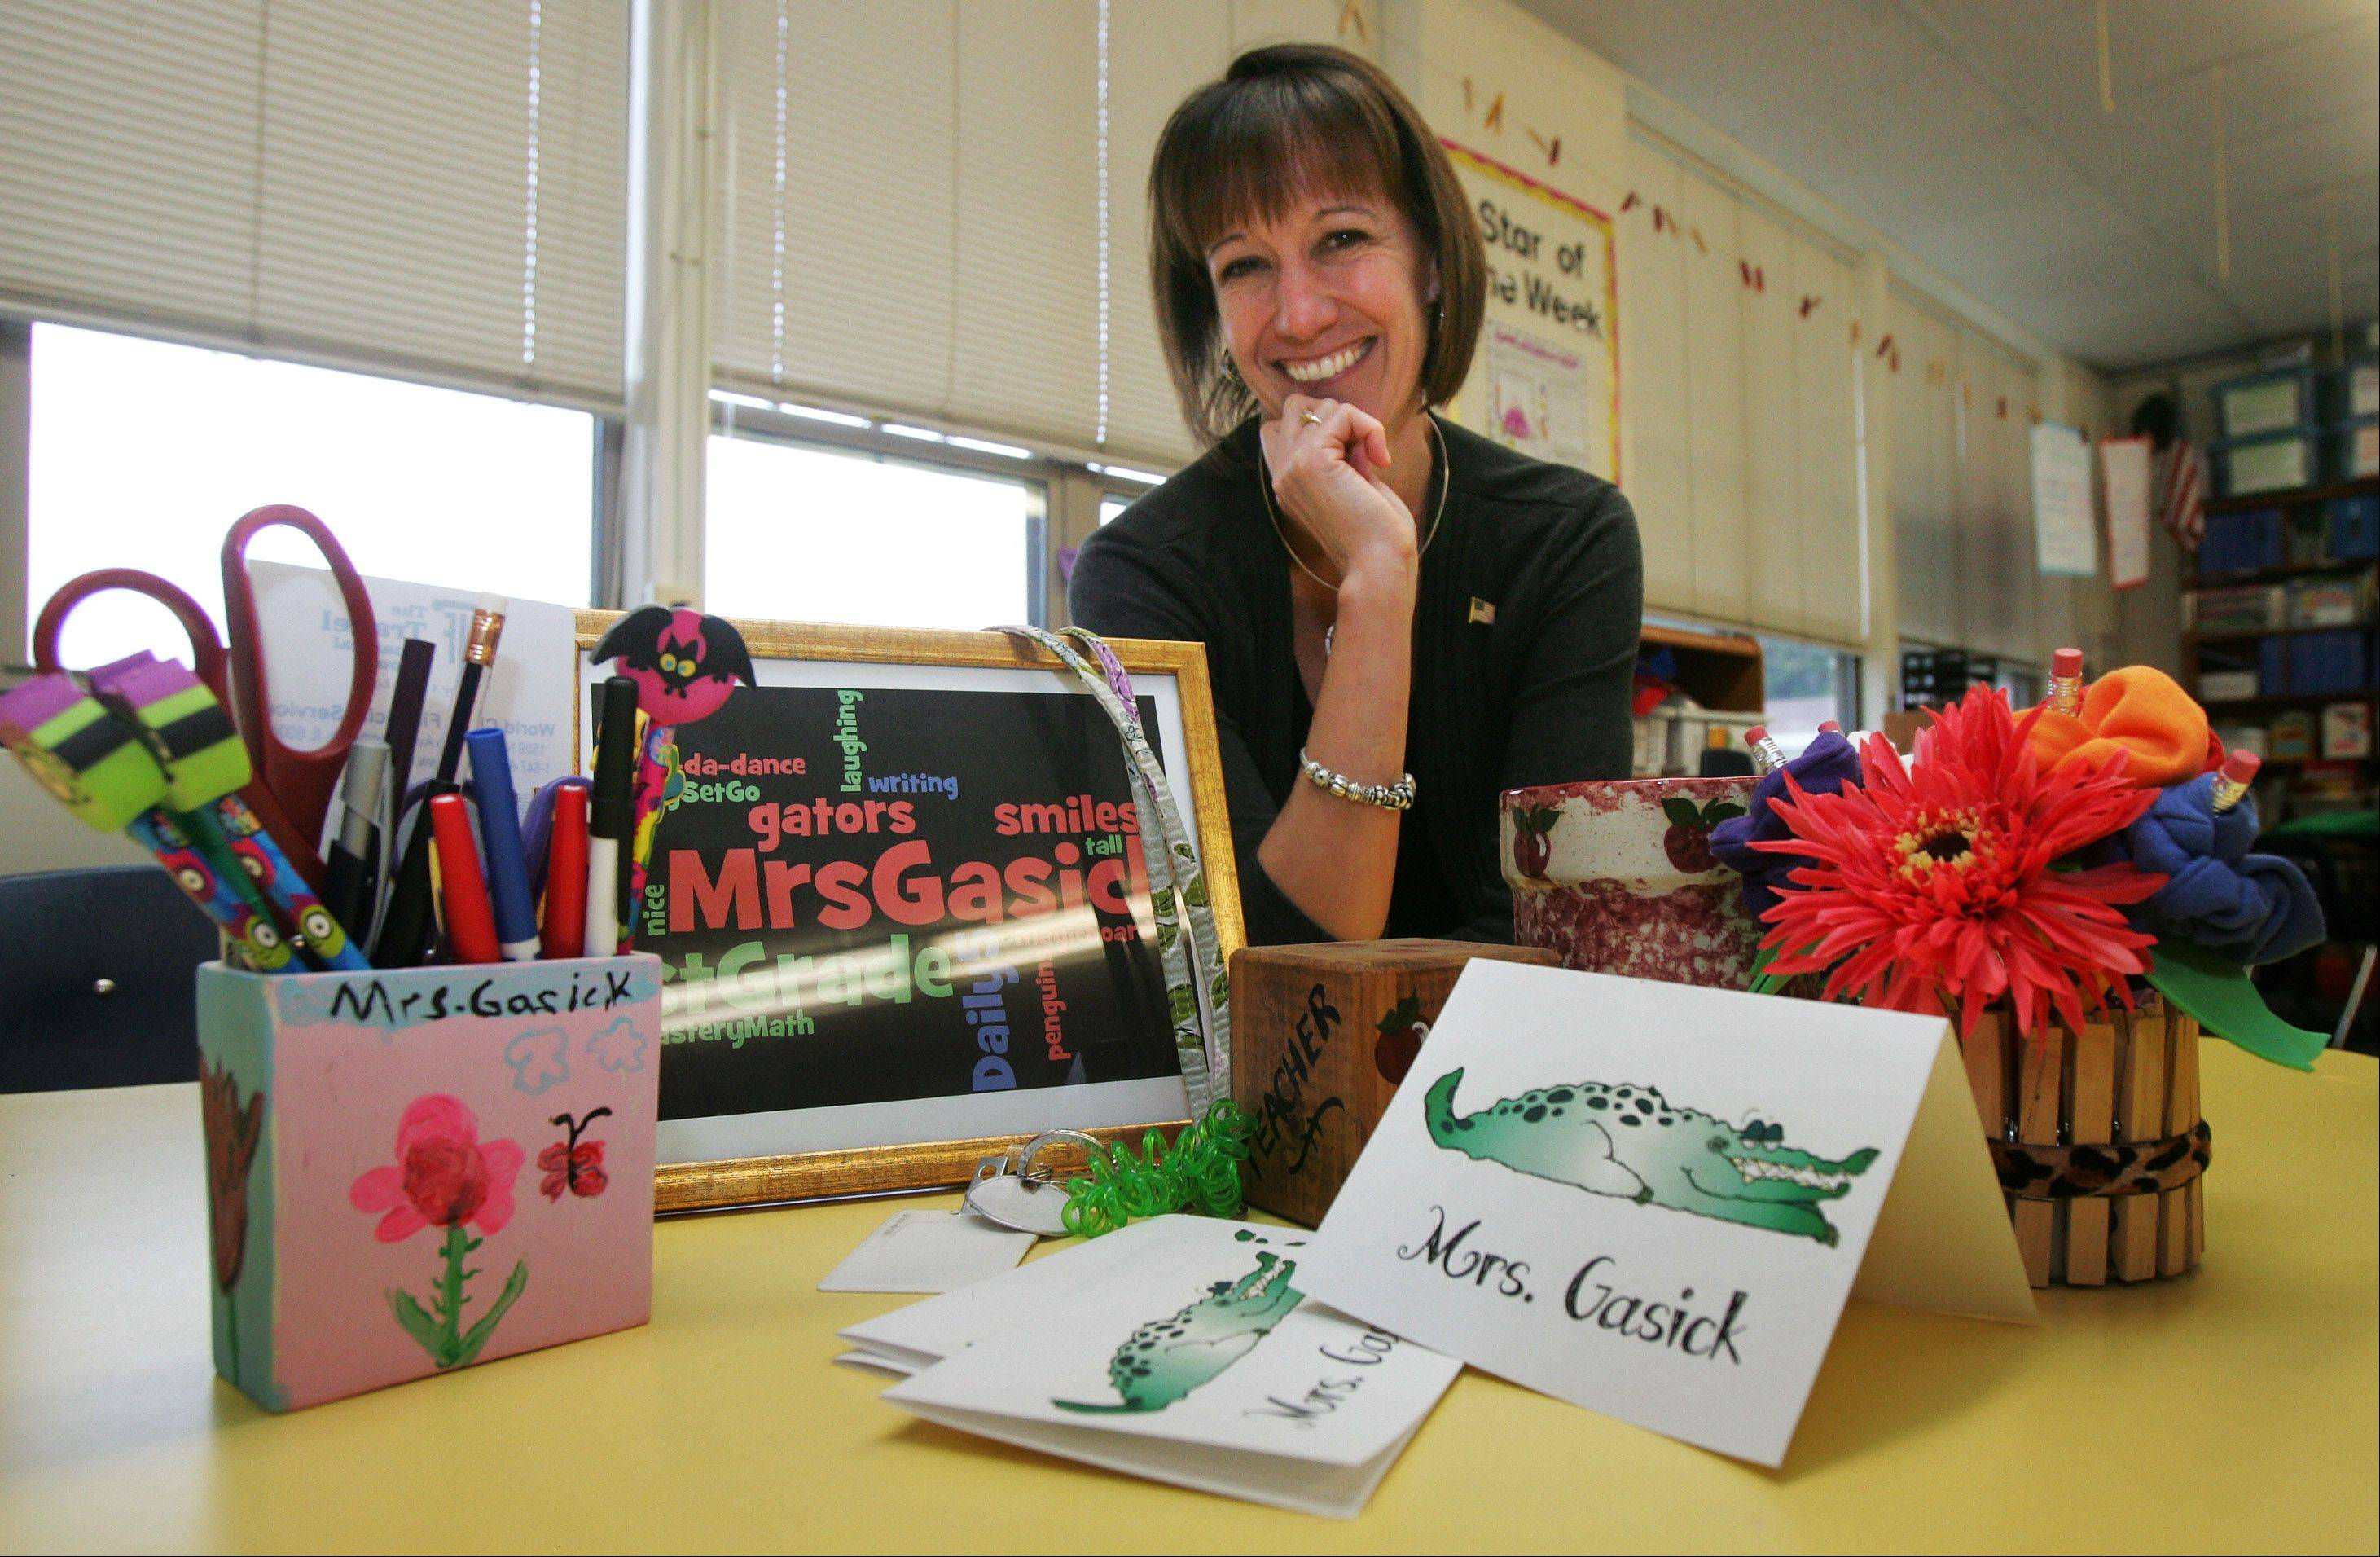 First-grade teacher Theresa Gasick with gifts given to her by students for the holiday season at Adler Park School in Libertyville.